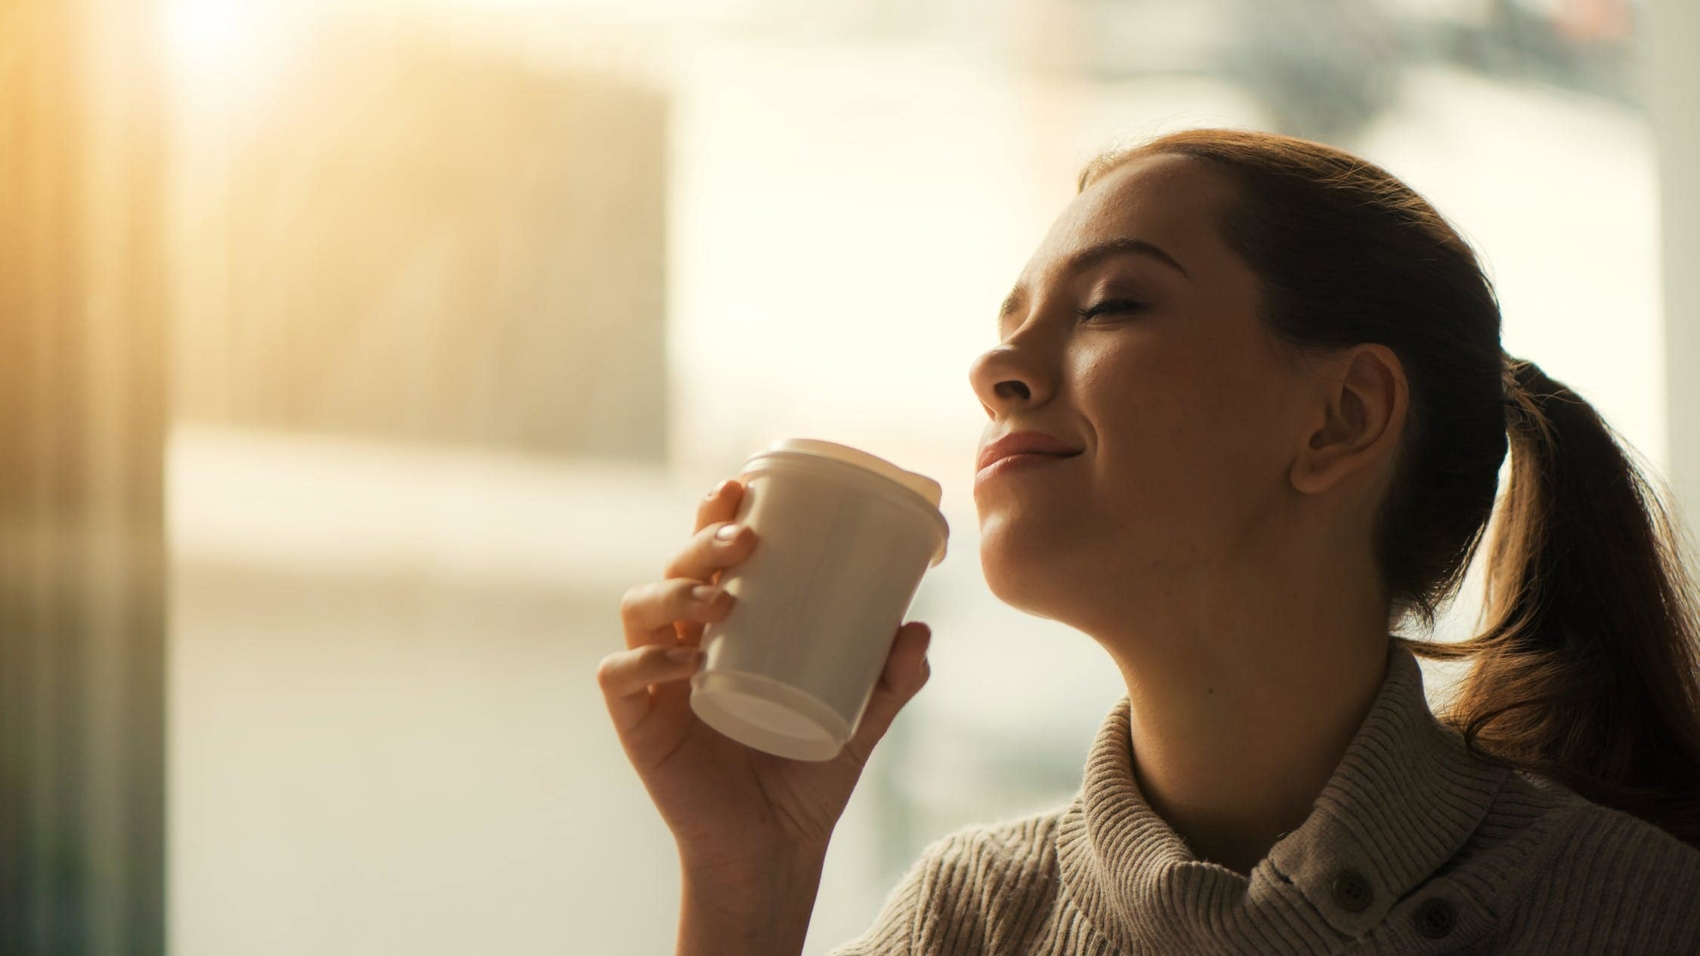 8 Steps To Avoid Overwhelm in Your Morning Routine